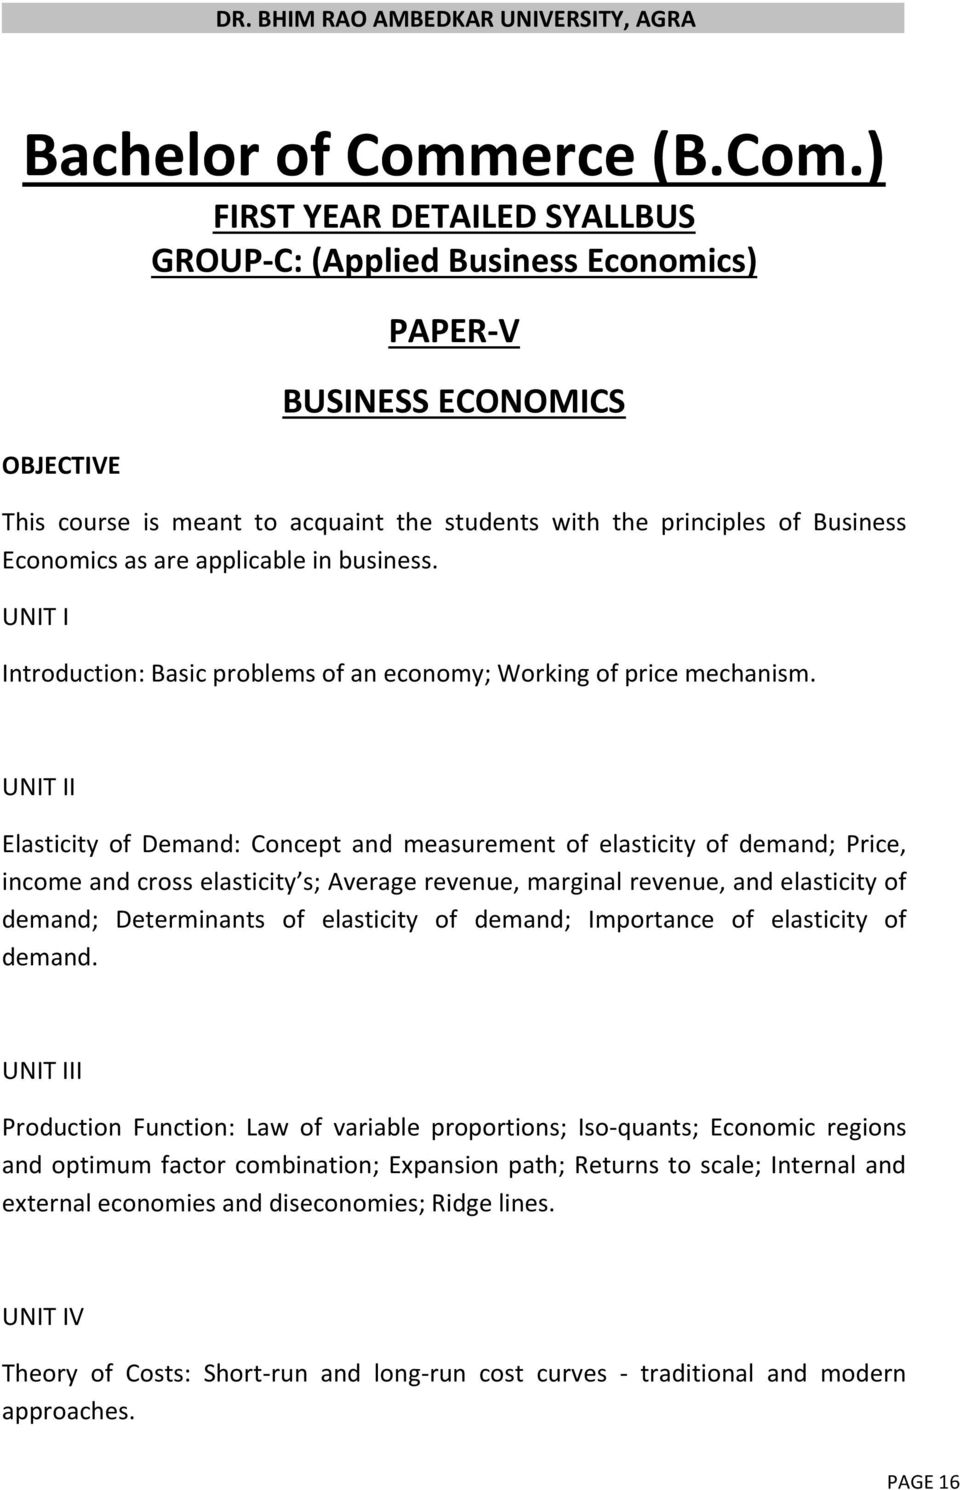 ) FIRST YEAR DETAILED SYALLBUS GROUP-C: (Applied Business Economics) OBJECTIVE PAPER-V BUSINESS ECONOMICS This course is meant to acquaint the students with the principles of Business Economics as